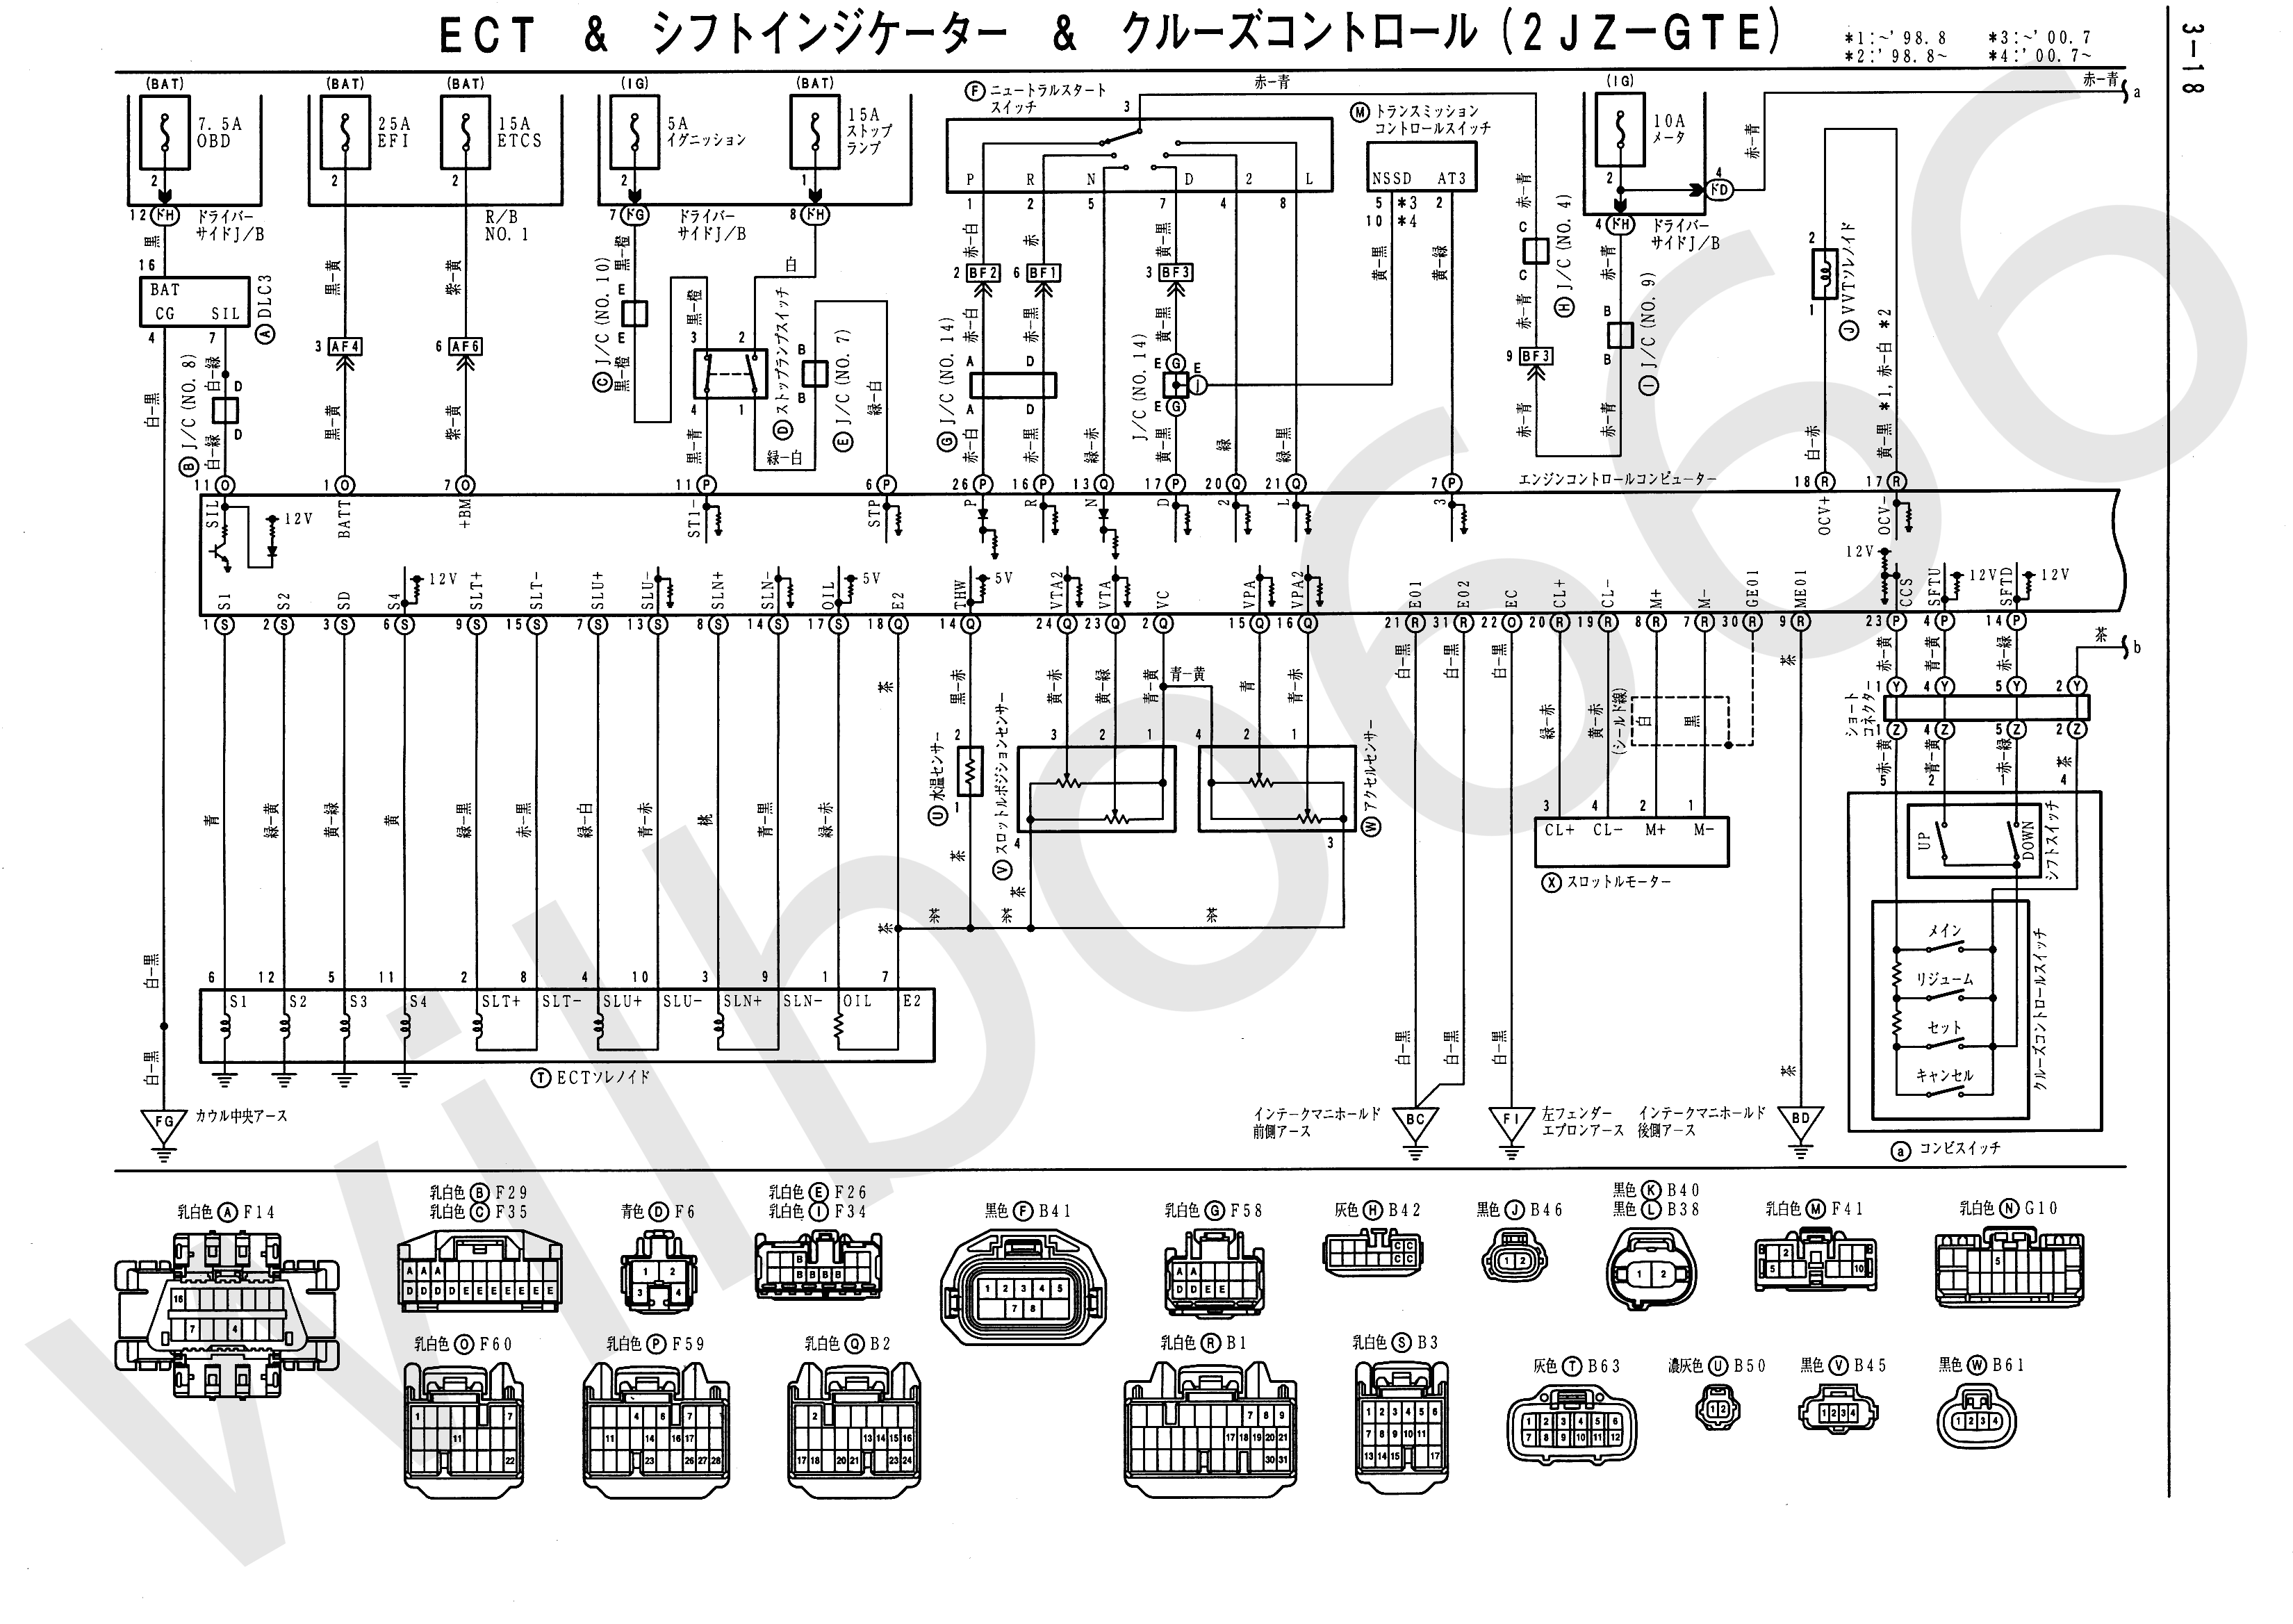 JZS161 Electrical Wiring Diagram 6748505 3 18 1jz wiring diagram light switch wiring diagram \u2022 free wiring 1jz vvti wiring diagram pdf at couponss.co